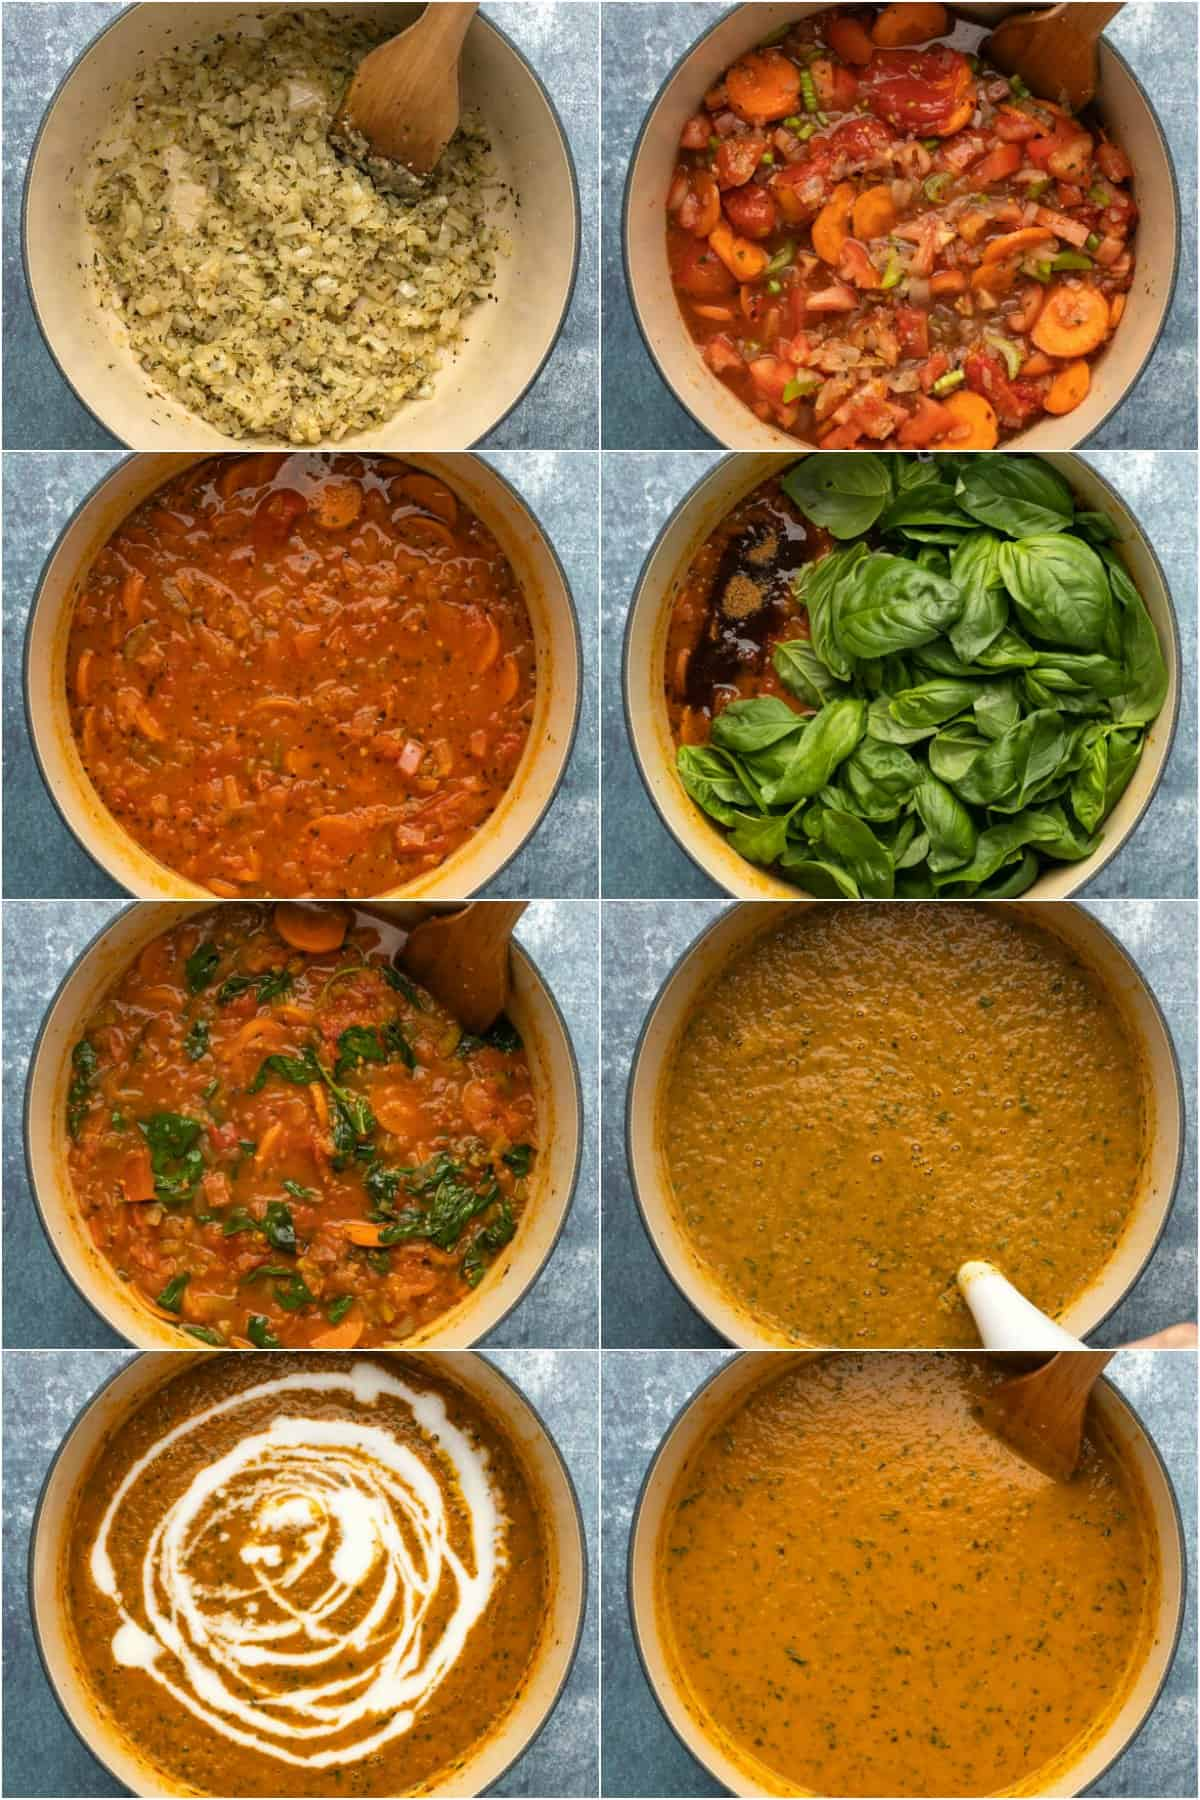 Step by step process photo collage of how to make tomato basil soup.